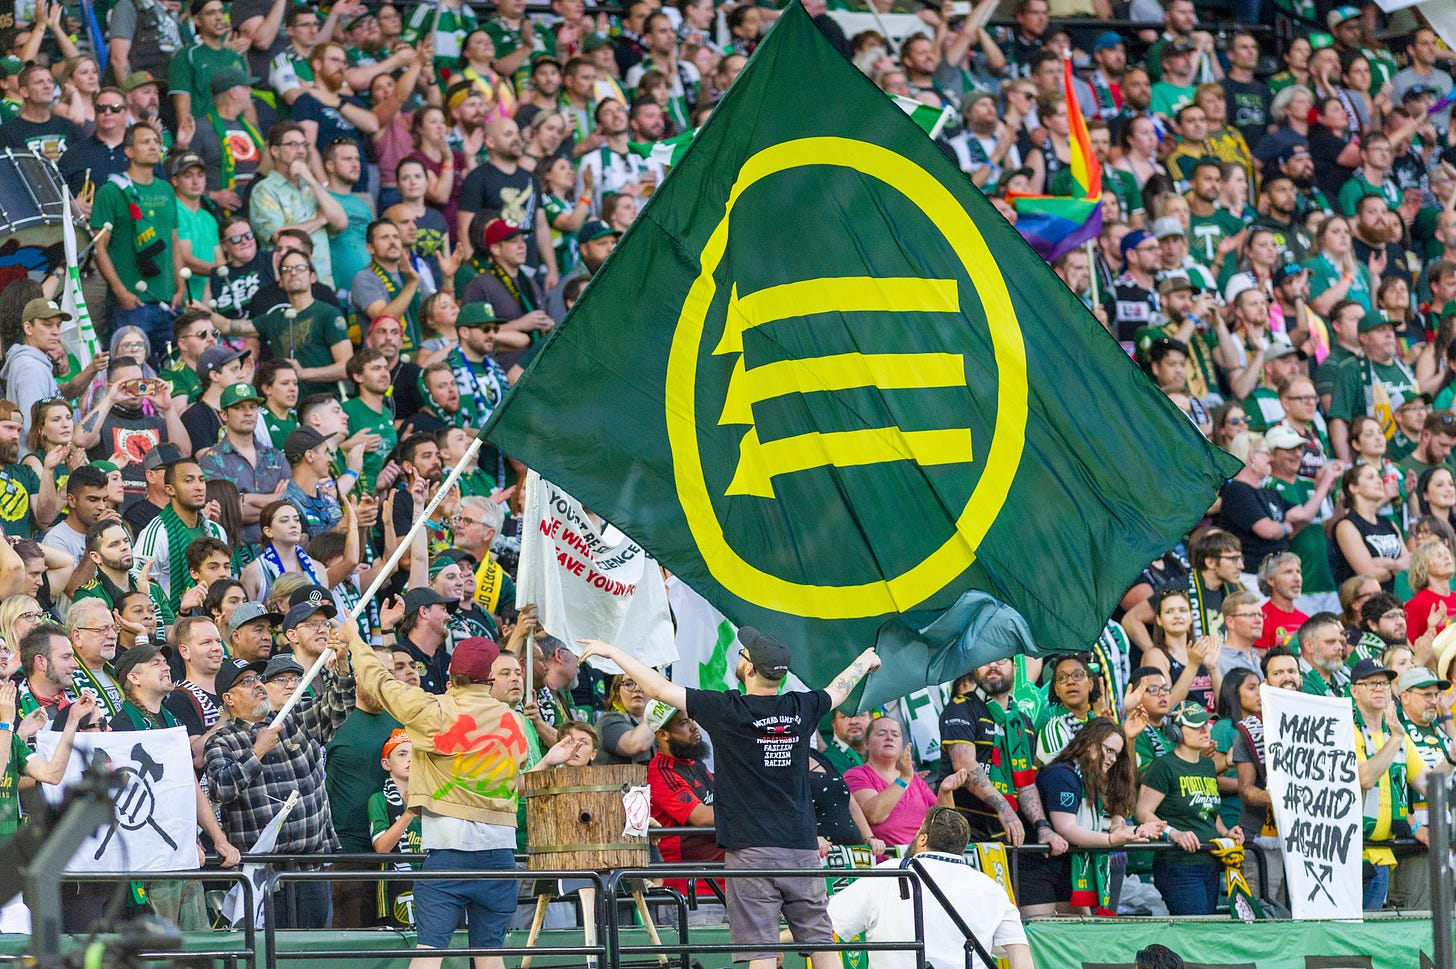 Portland Timbers fans have been using the Iron Front symbol. The MLS says  it is associated with Antifa. - The Washington Post